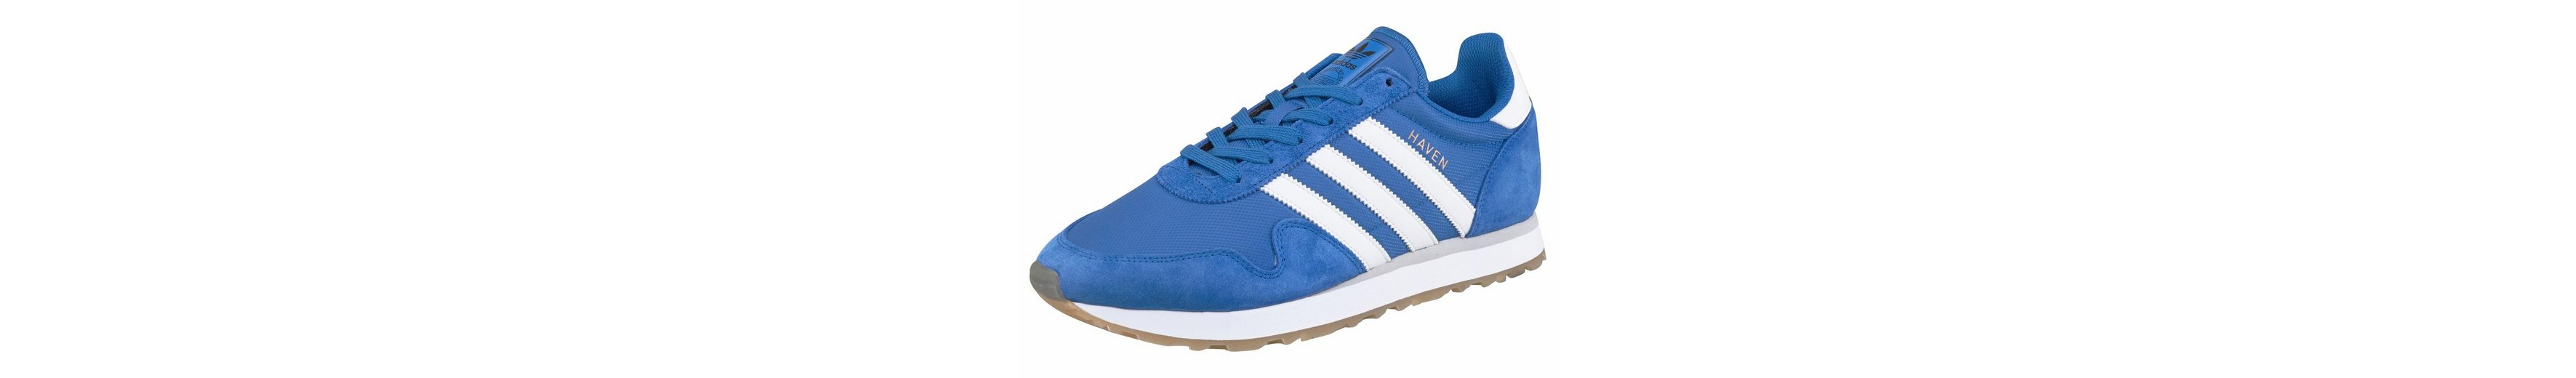 adidas Originals Haven Sneaker